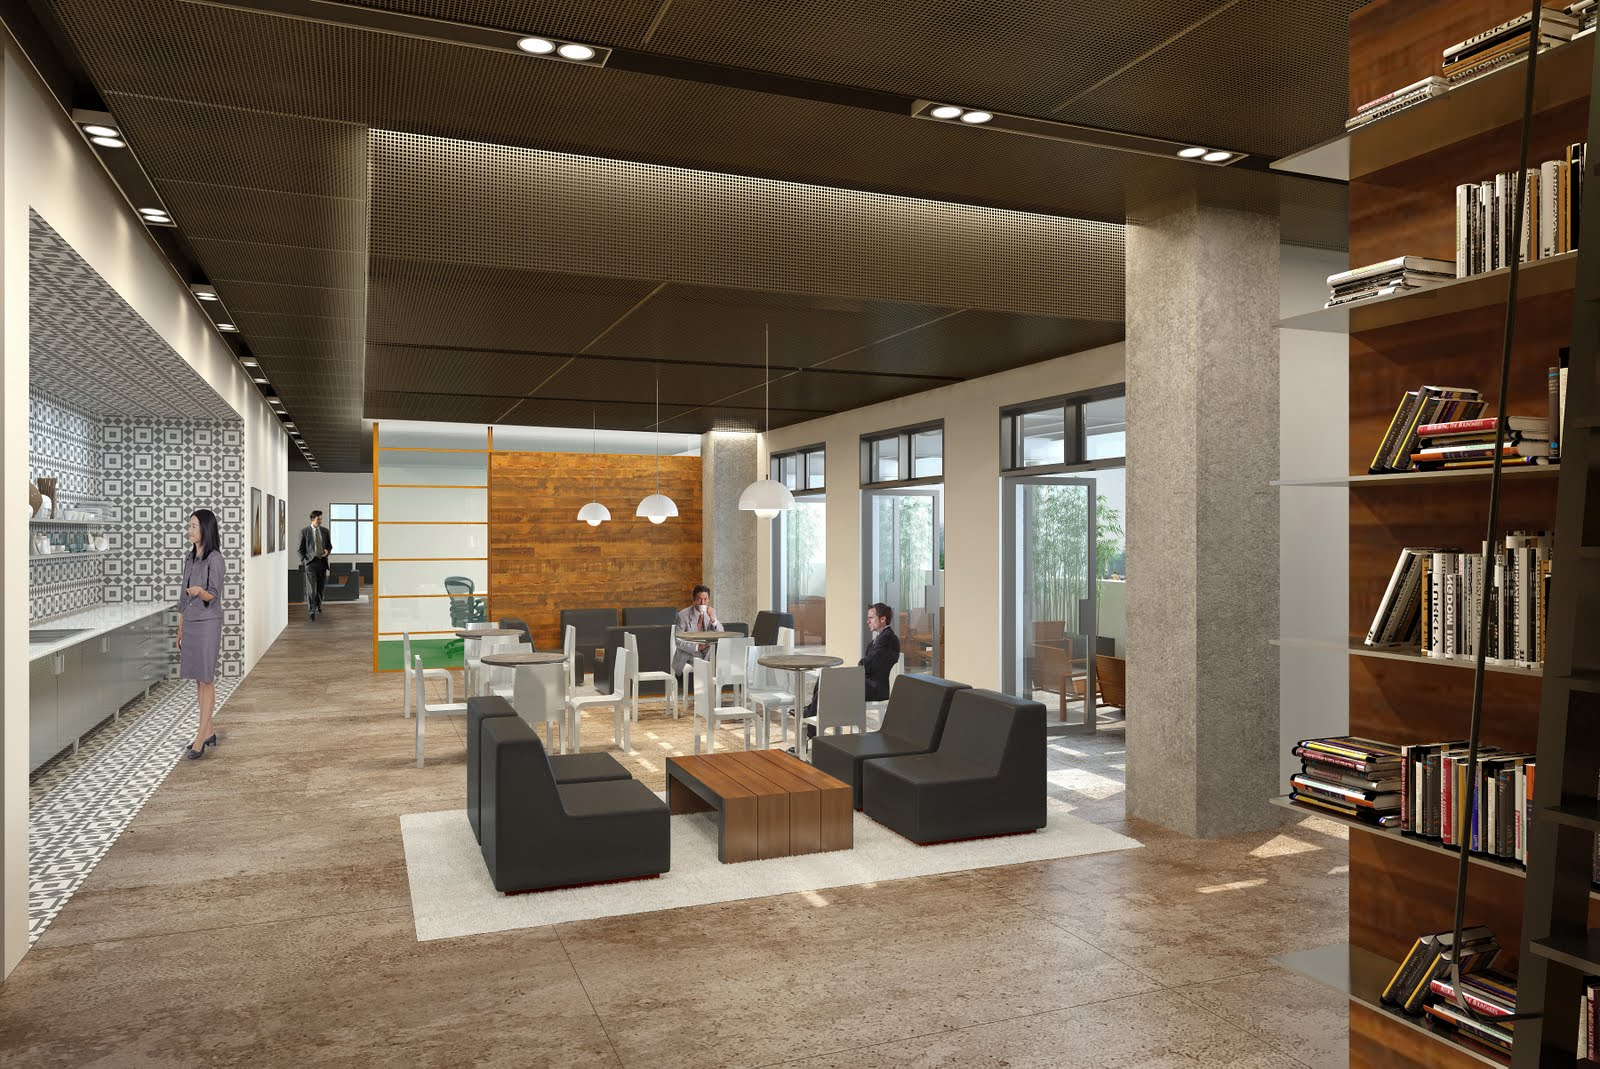 Shubin donaldson gk lounge renderings for Lounge interior design